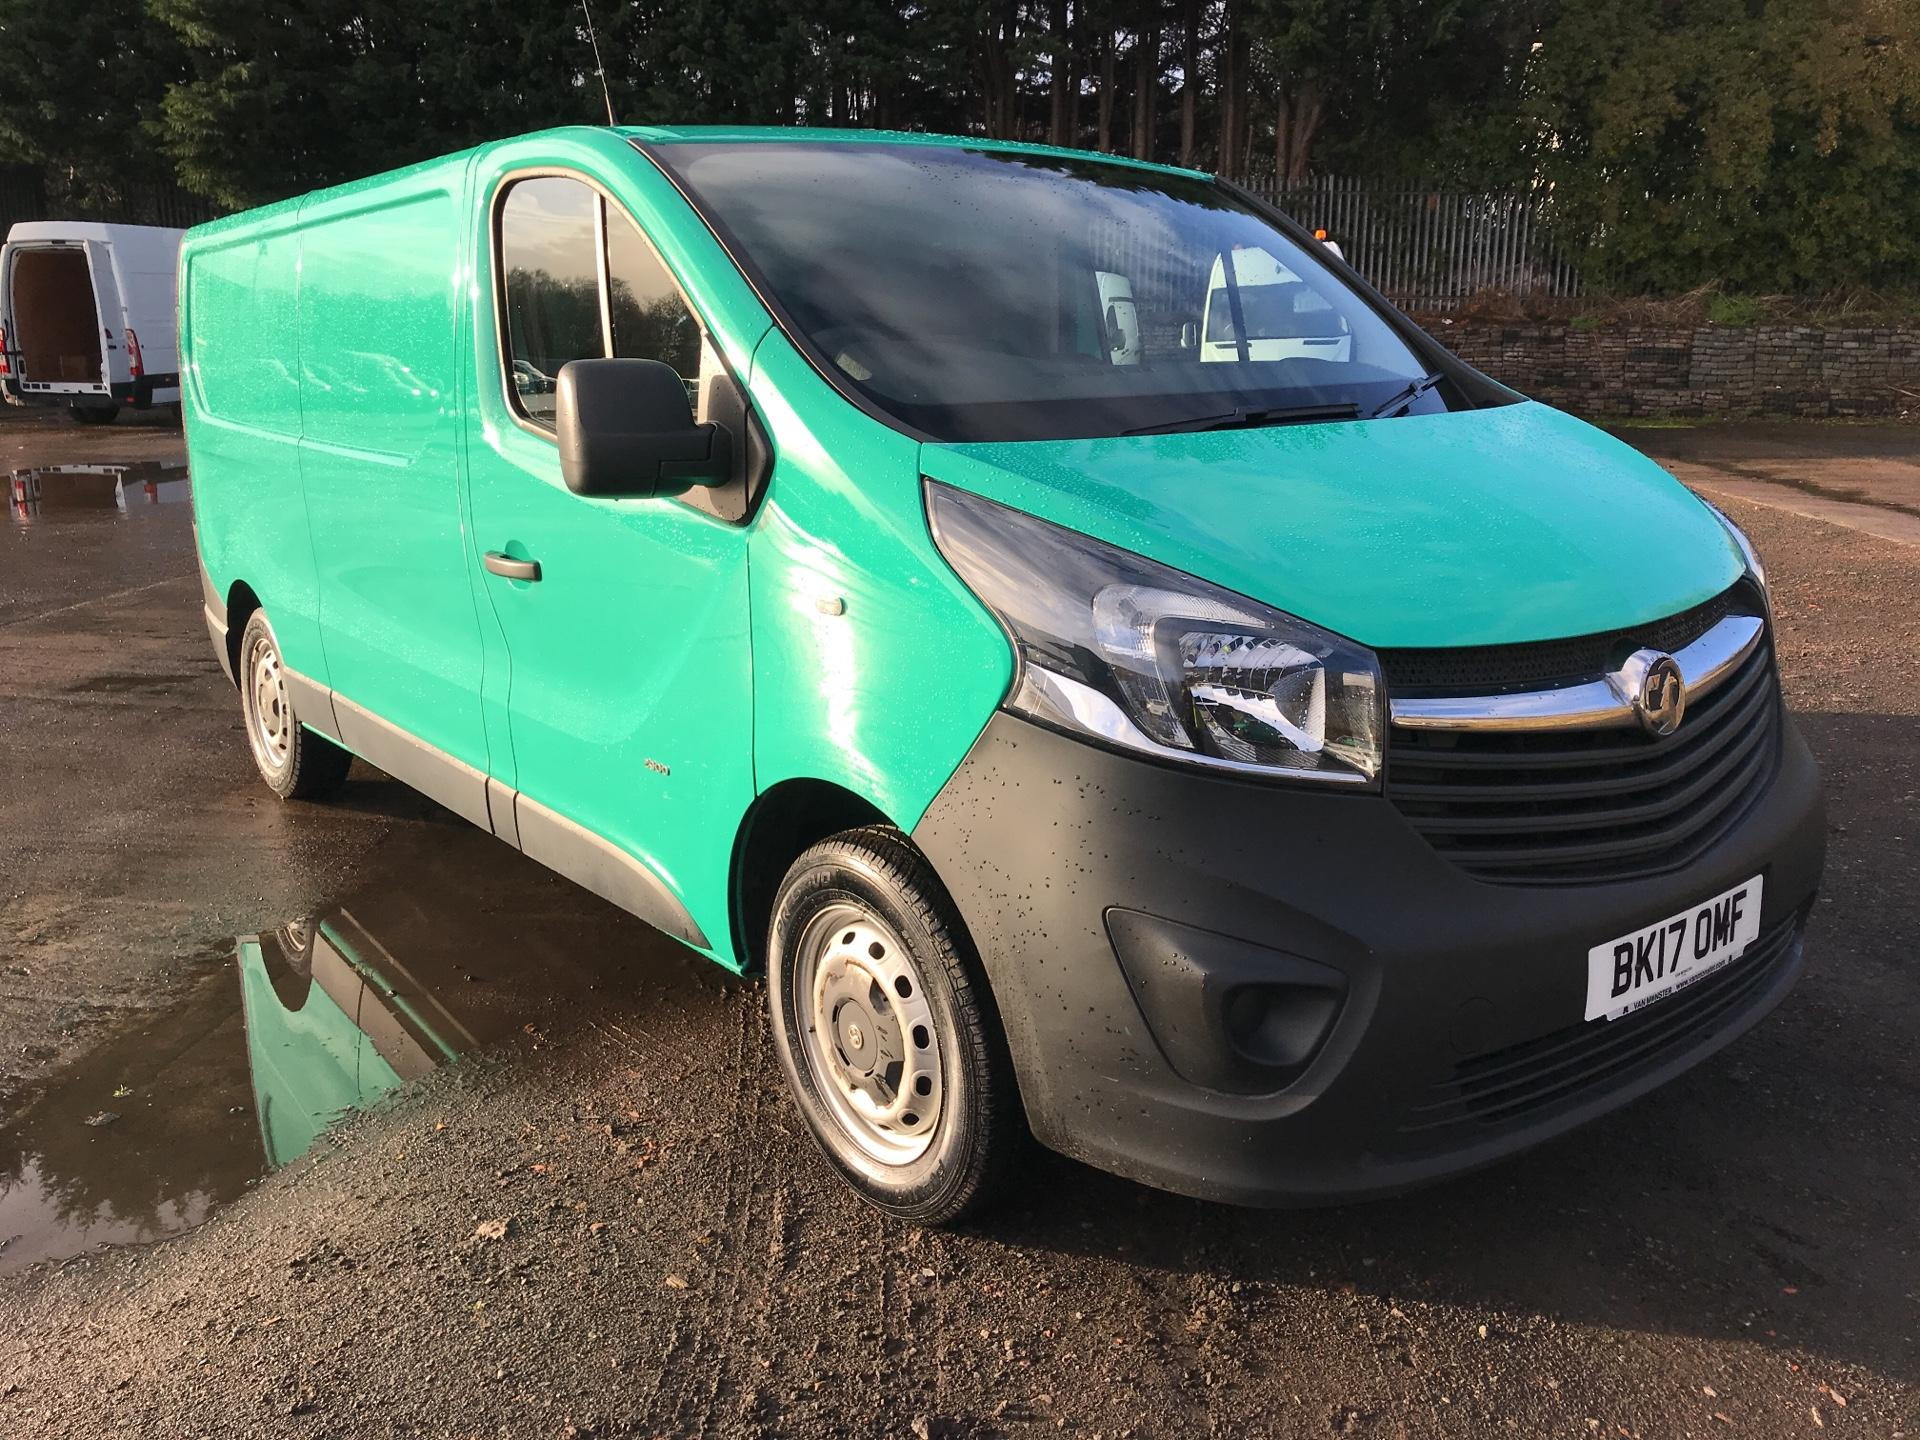 2017 Vauxhall Vivaro L2 H1 2900 1.6 CDTI 95PS EURO 6 (VALUE RANGE VEHICLE - CONDITION REFLECTED IN PRICE) (BK17OMF)